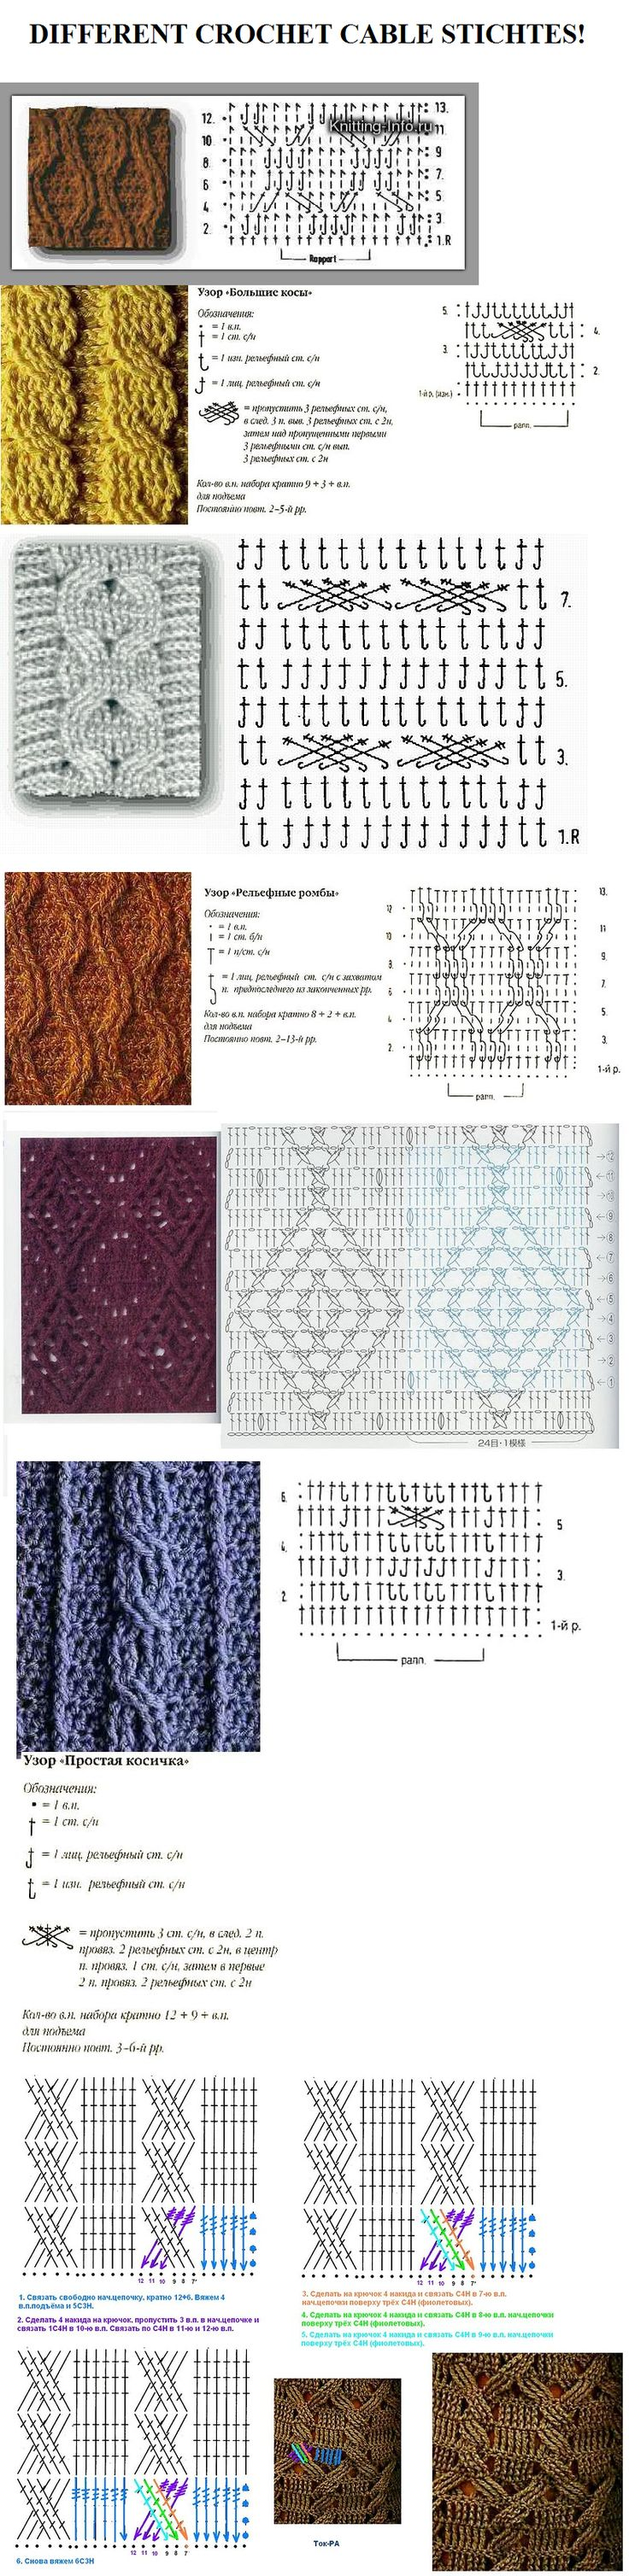 Different crochet cable stitches! - GORGEOUS!!! A